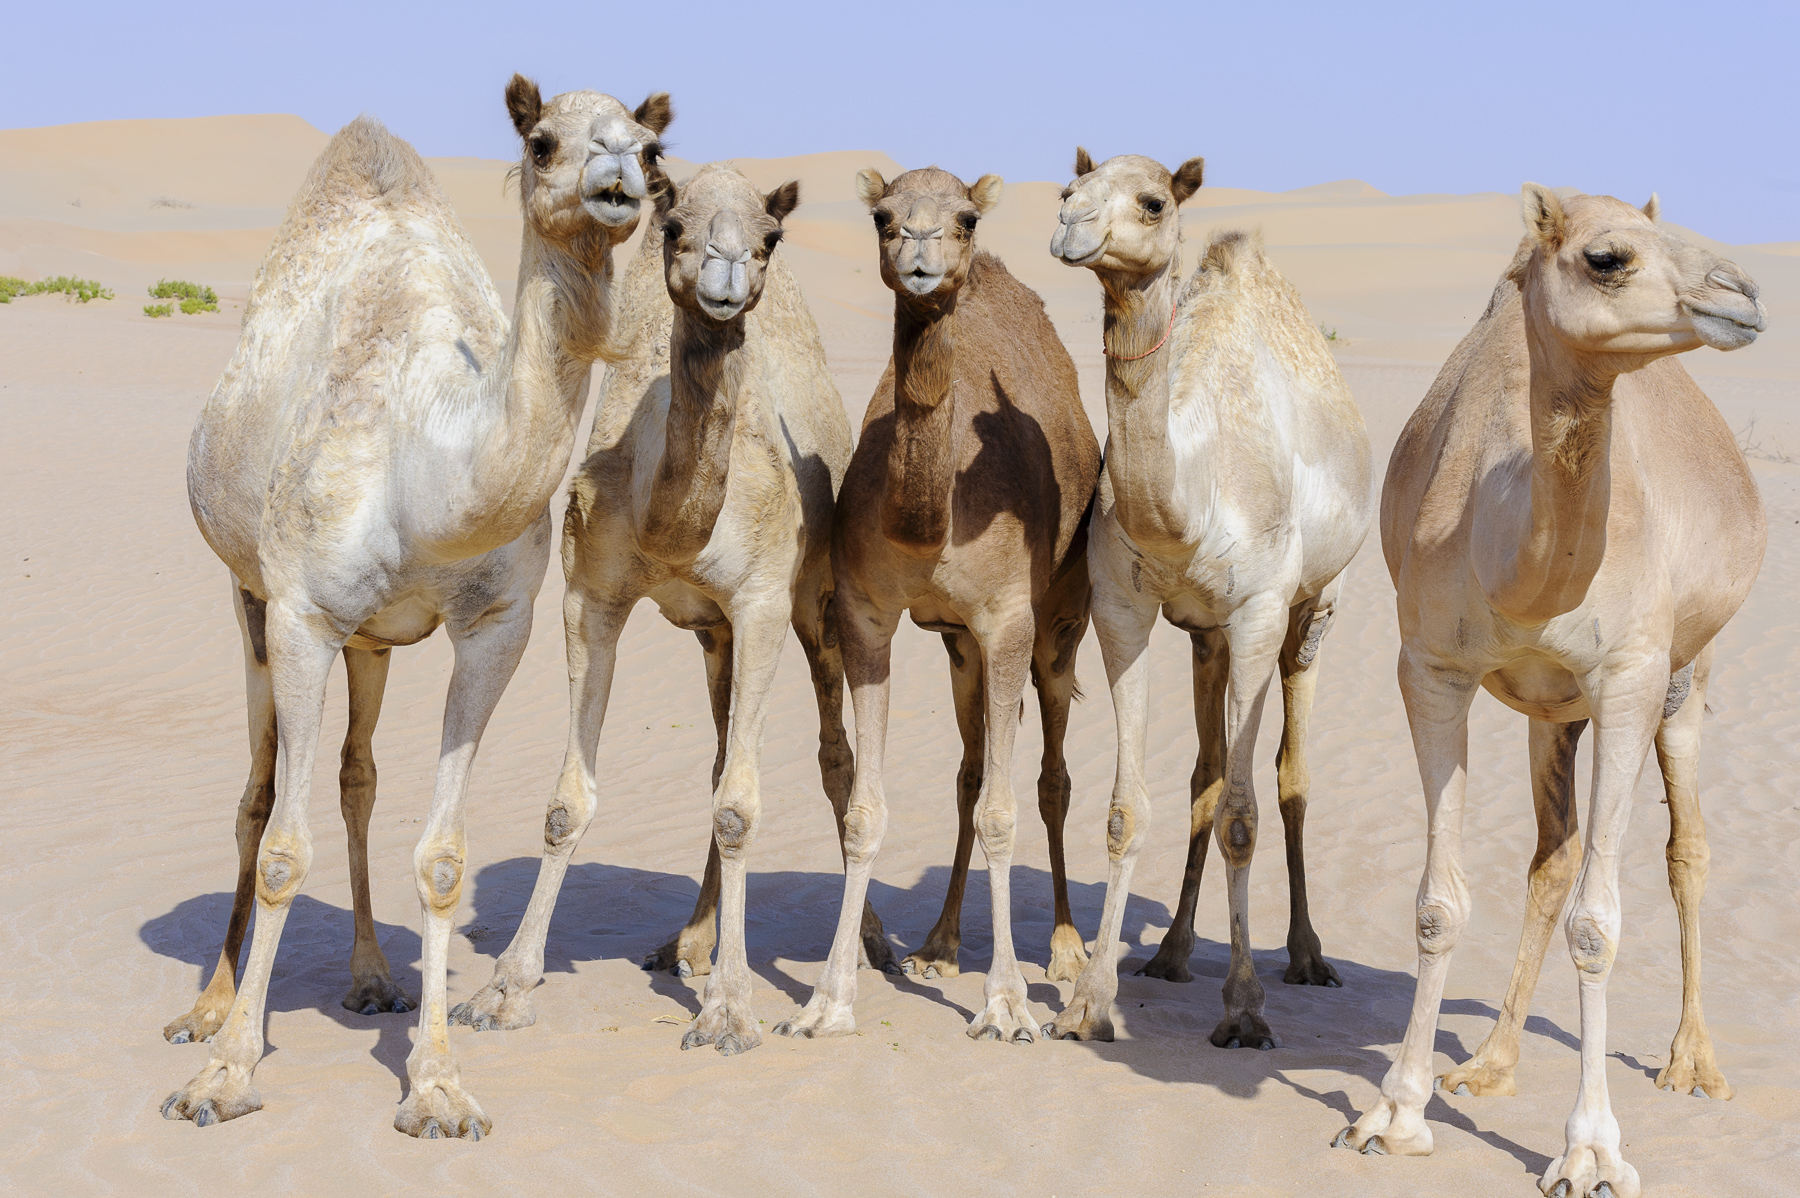 Arabian Camels looking at the camera